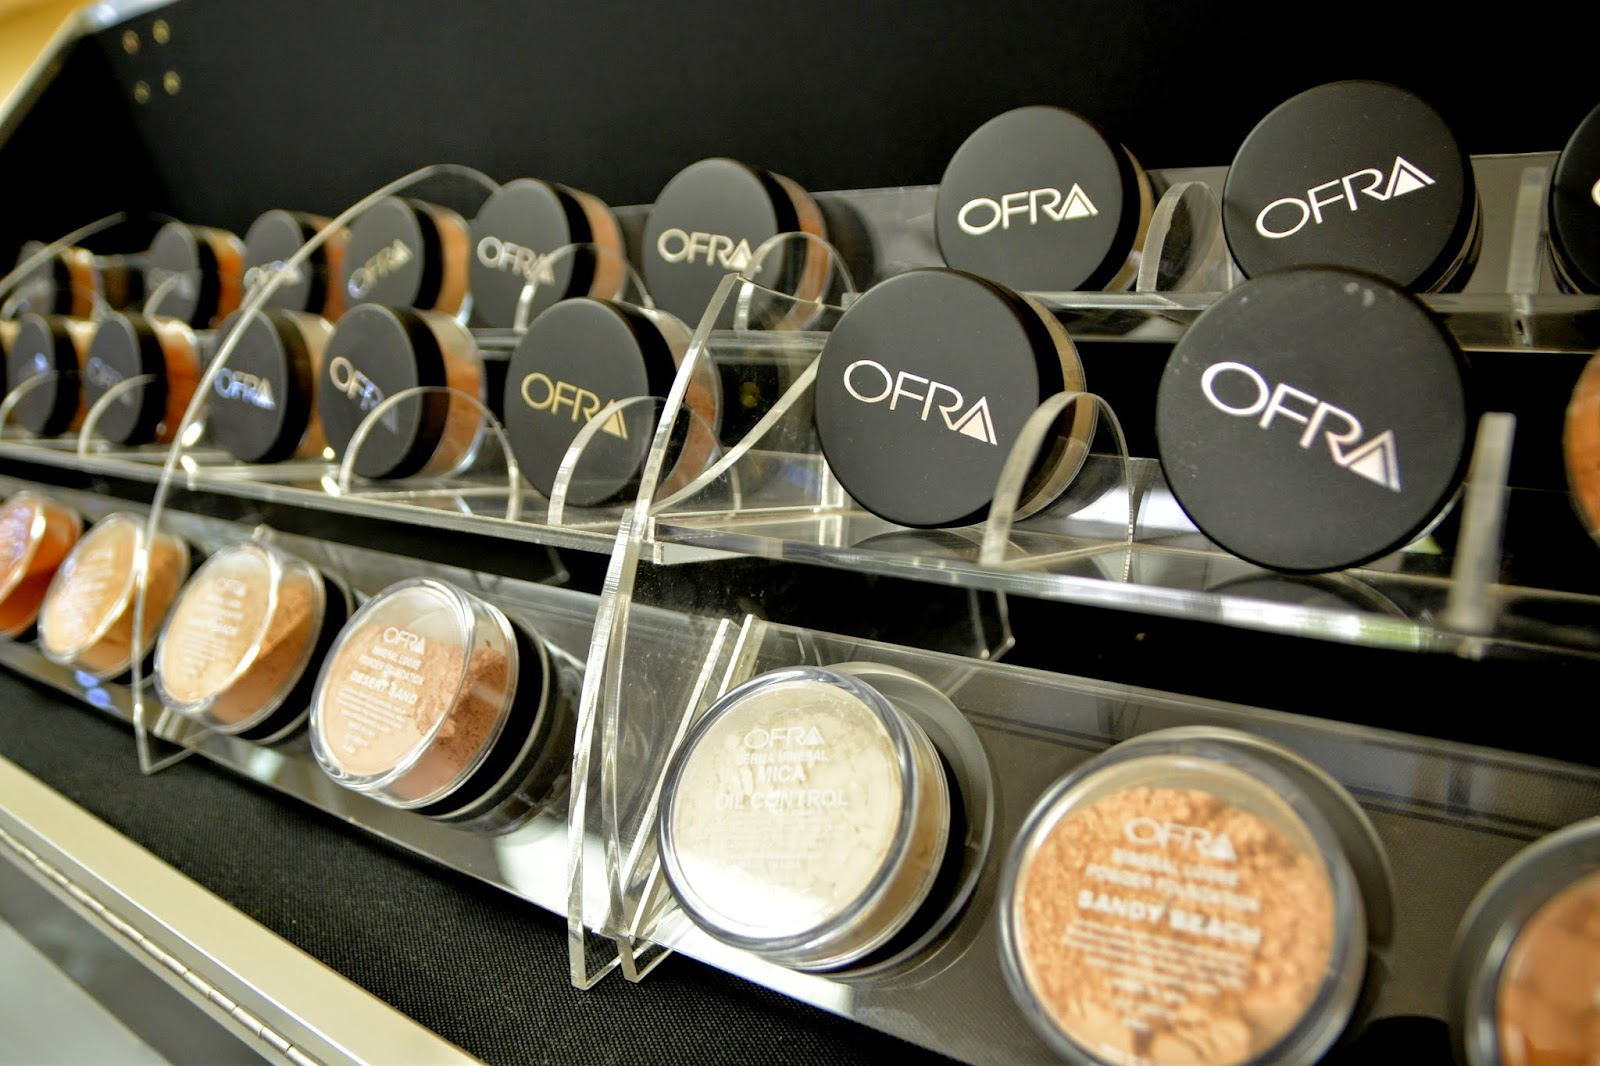 What Makes Great Cosmetology School Makeup Kits? -Ofra Cosmetics